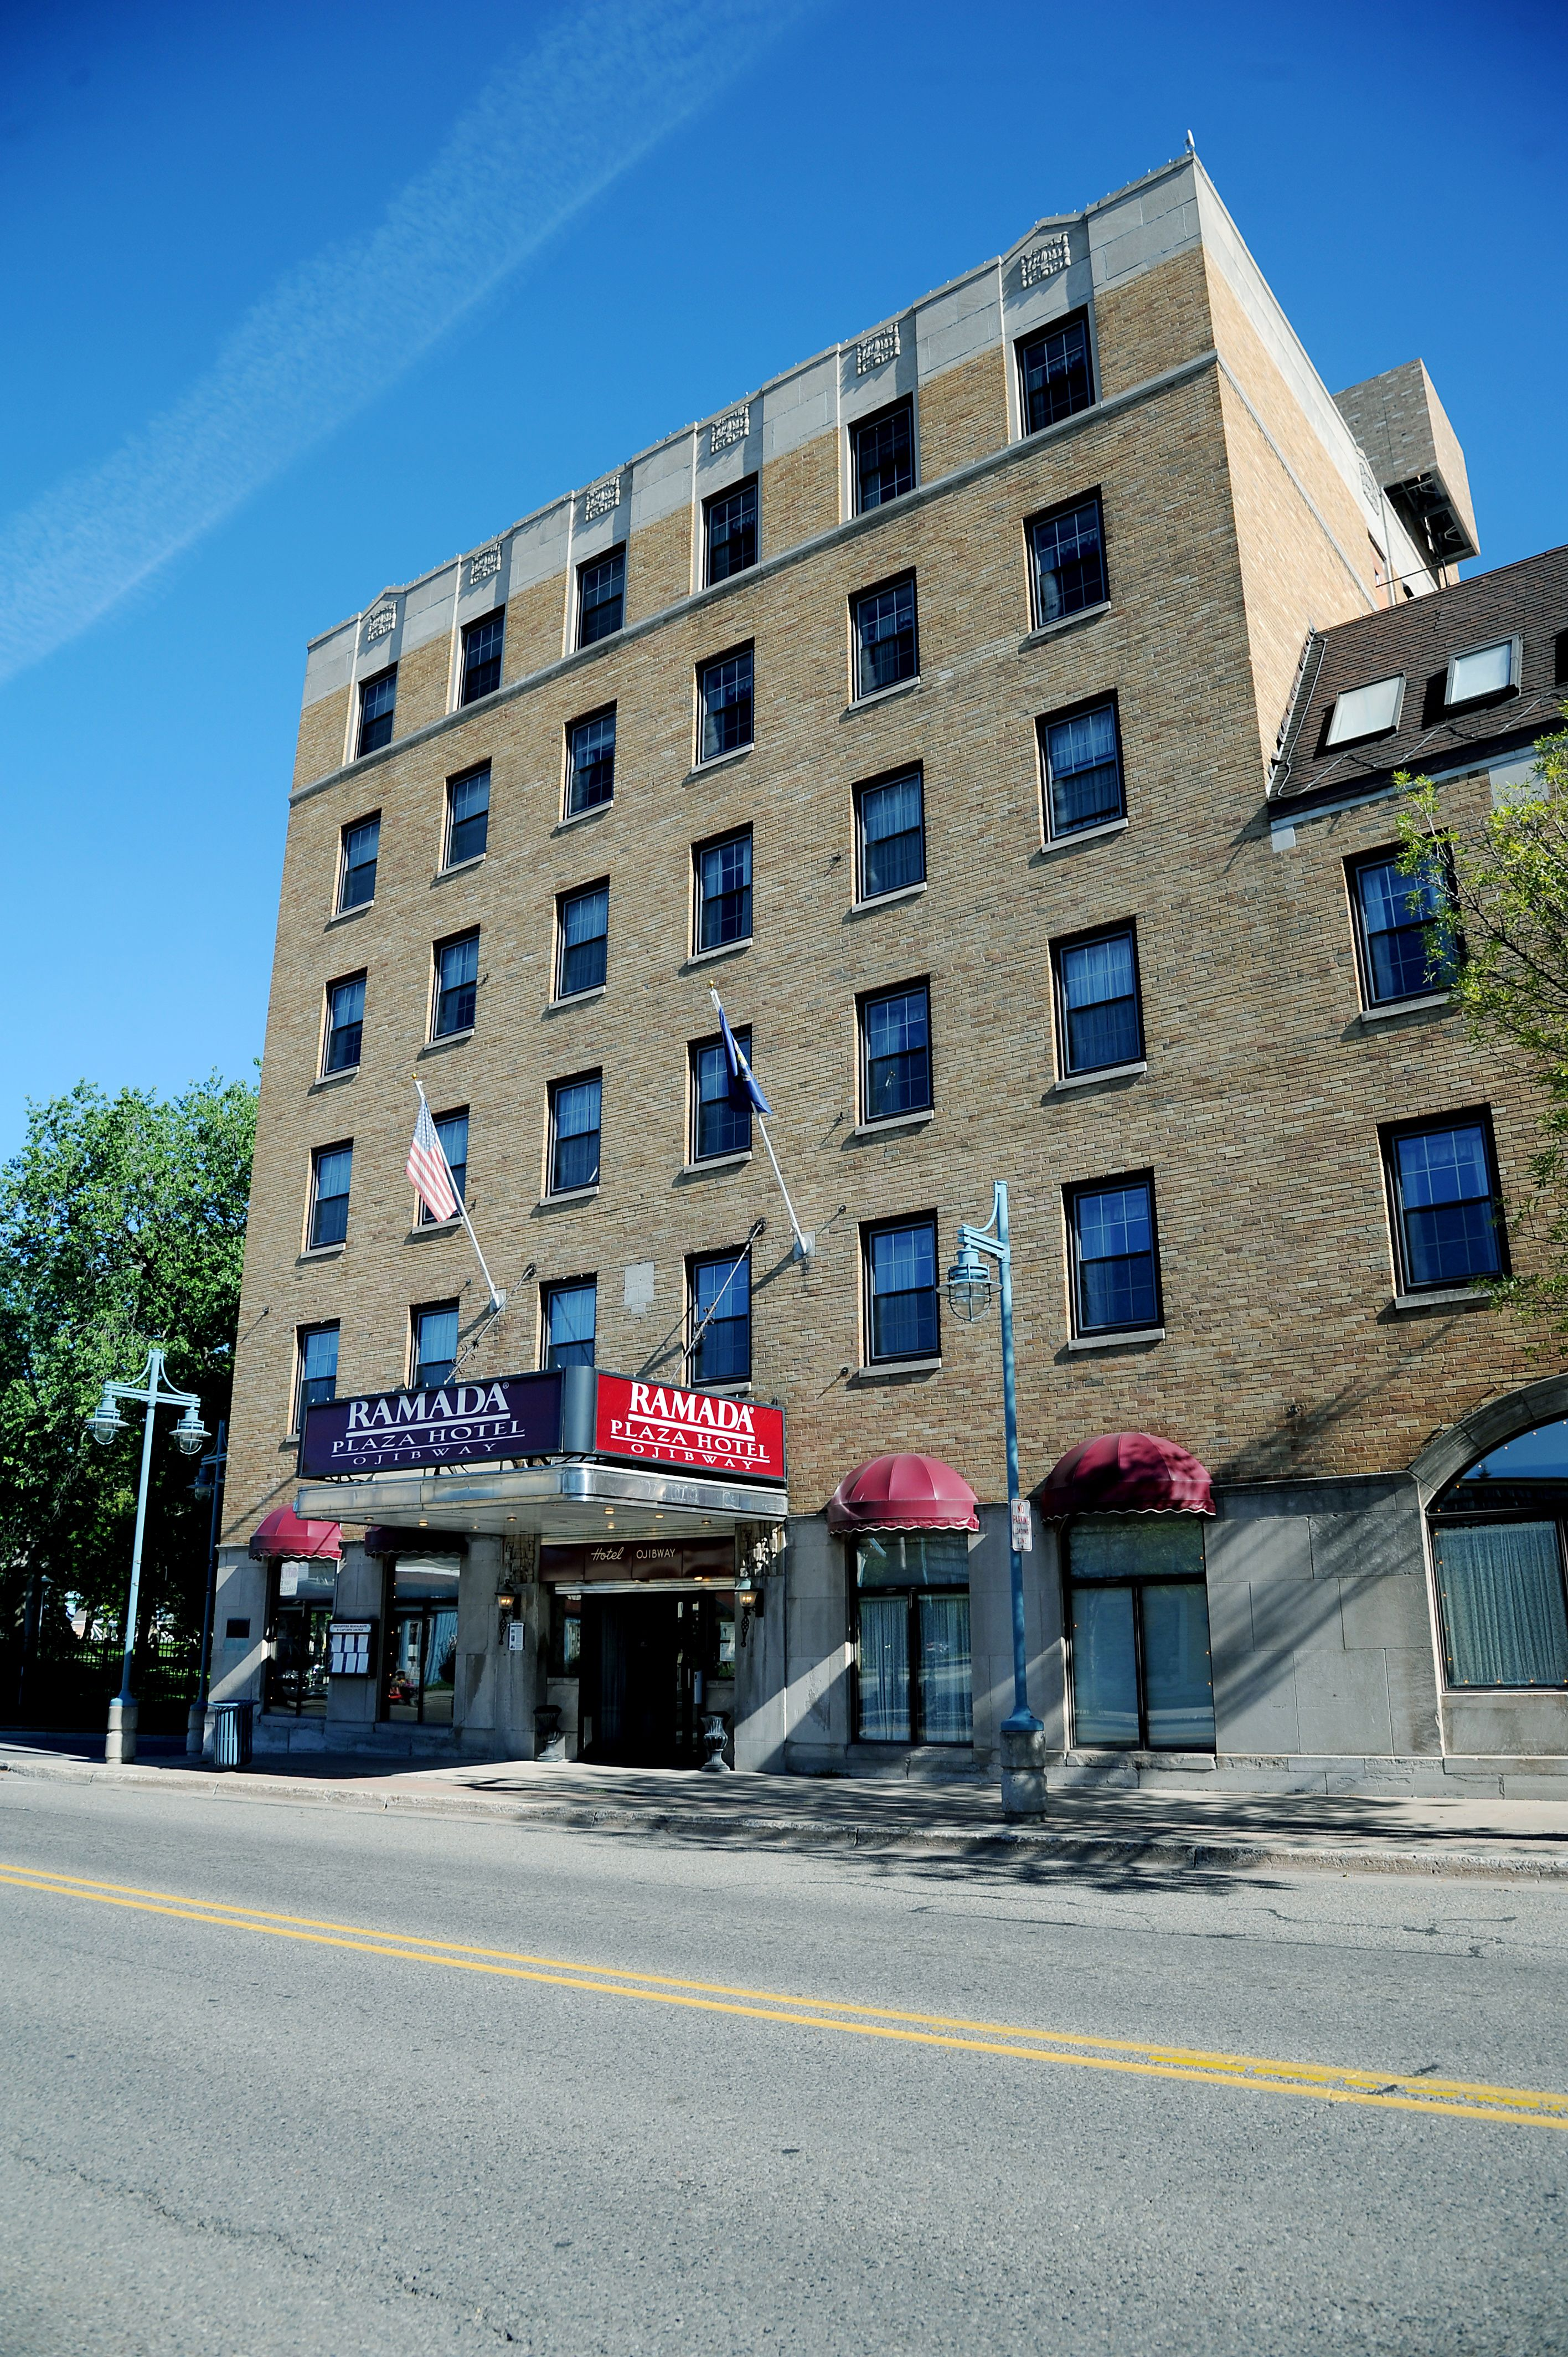 Ramada Plaza Ojibway Hotel Is Located In Beautiful Downtown Sault Ste Marie Mi